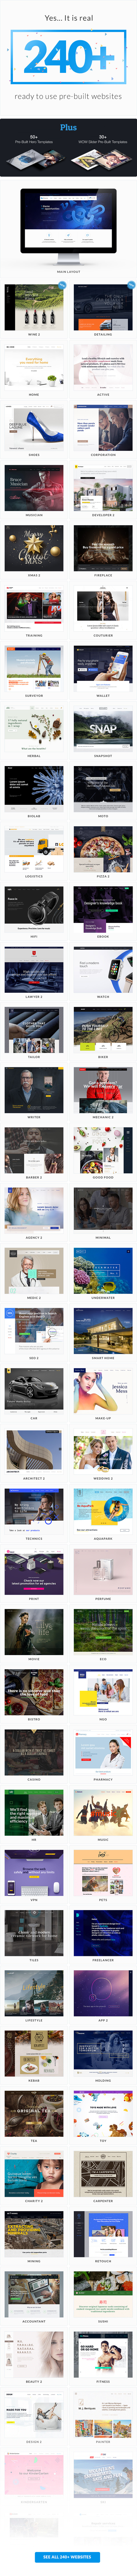 layouts 3.5 - BeTheme - HTML Responsive Multi-Purpose Template